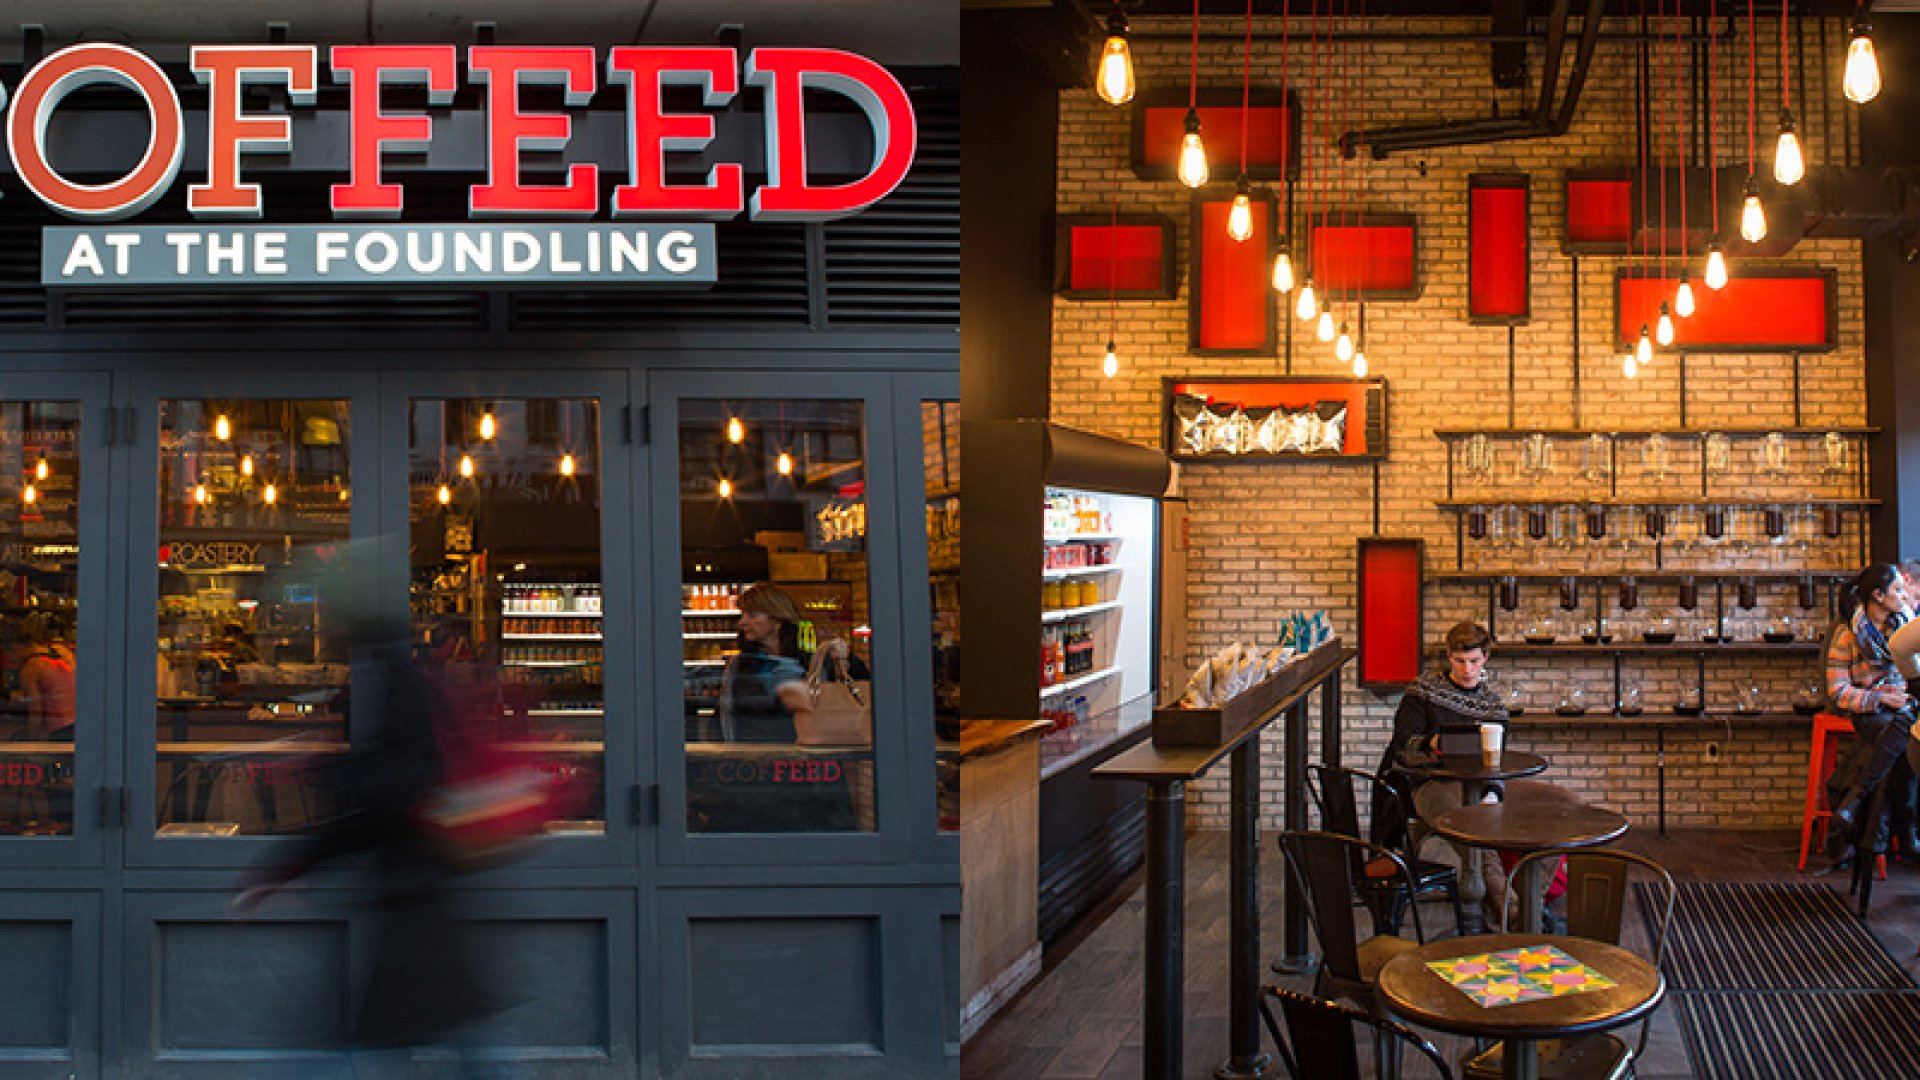 How This Coffee Shop's Good Deeds Landed Its Killer Location